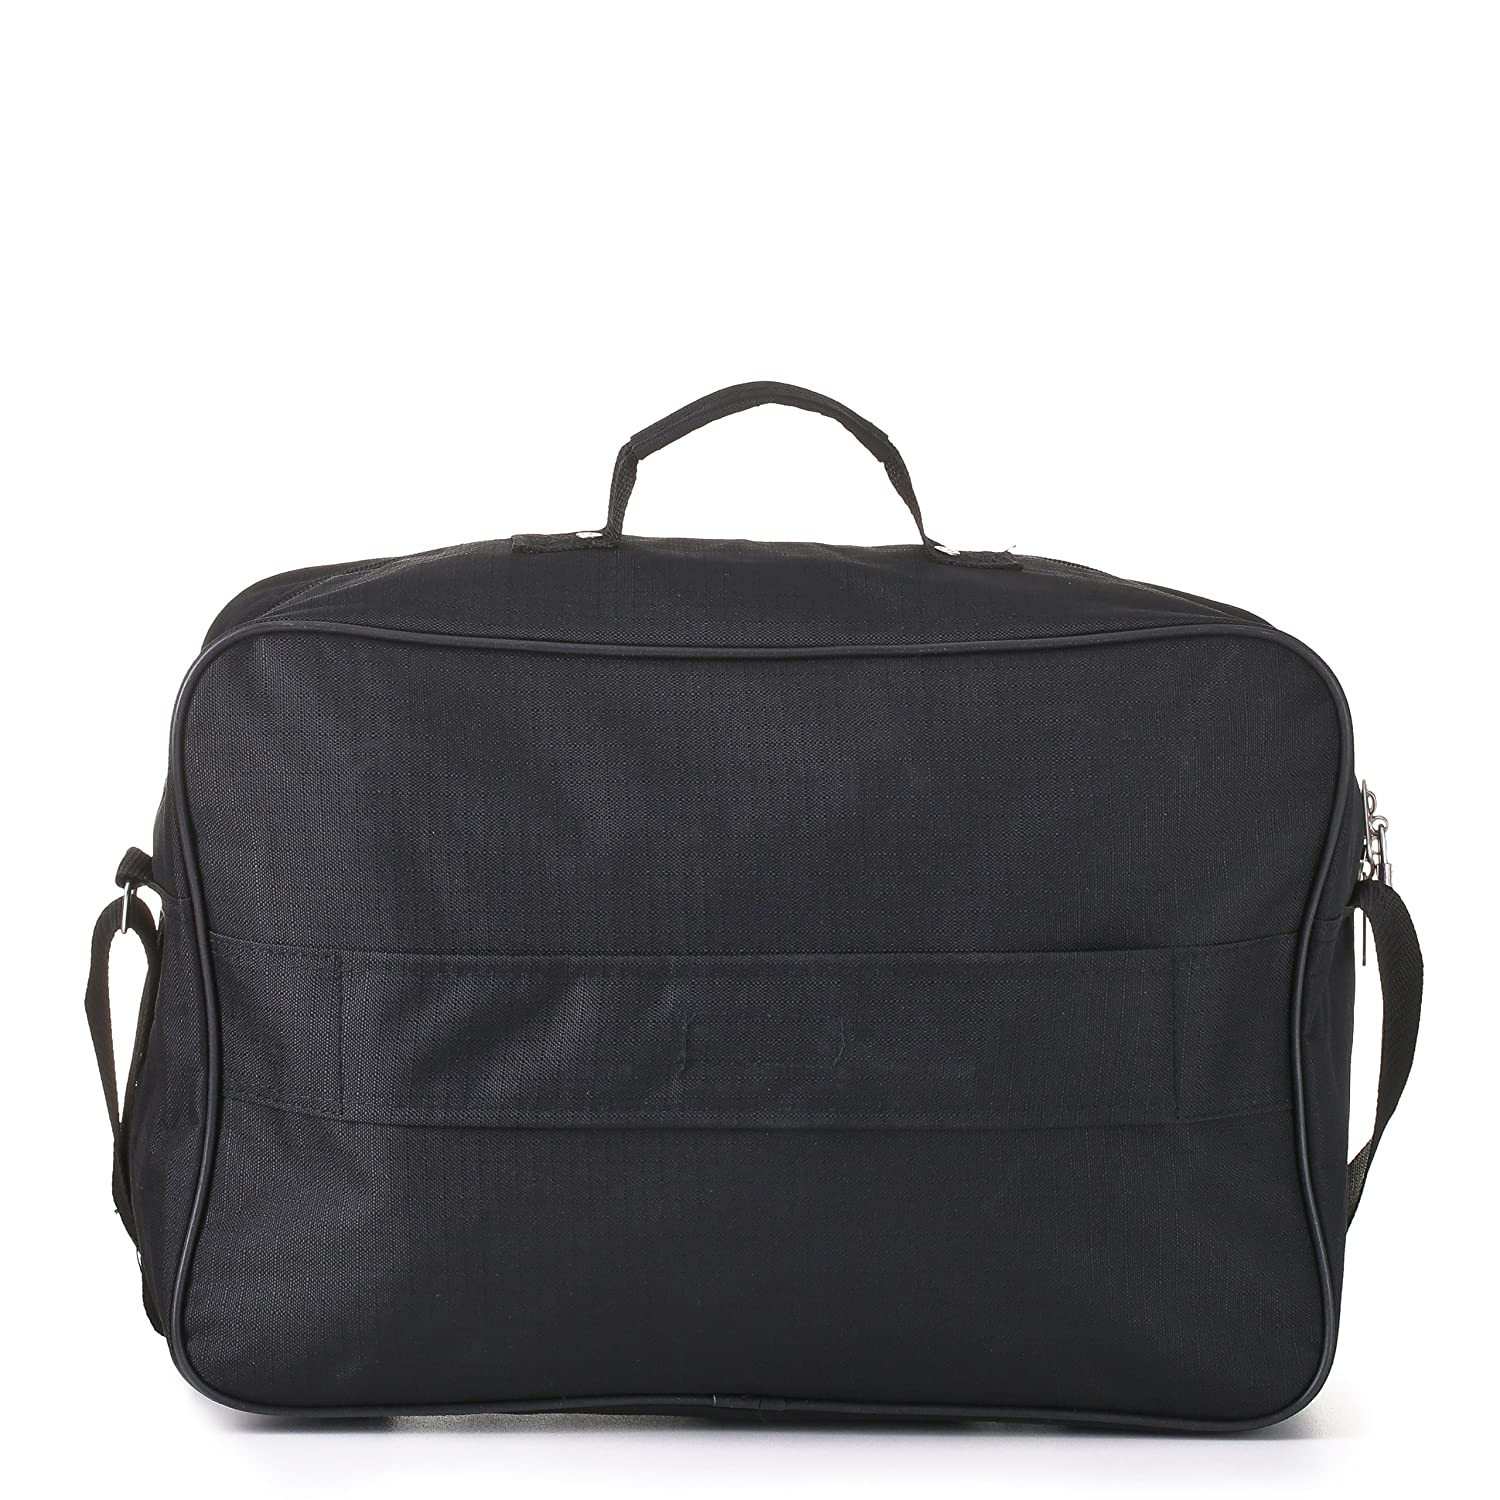 57ae18b6e7ad Amazon.com  2 PCS 16-inch Carry On Hand Luggage Flight Duffle Personal or  Underseat Bag 19L  Carry On Luggage Online